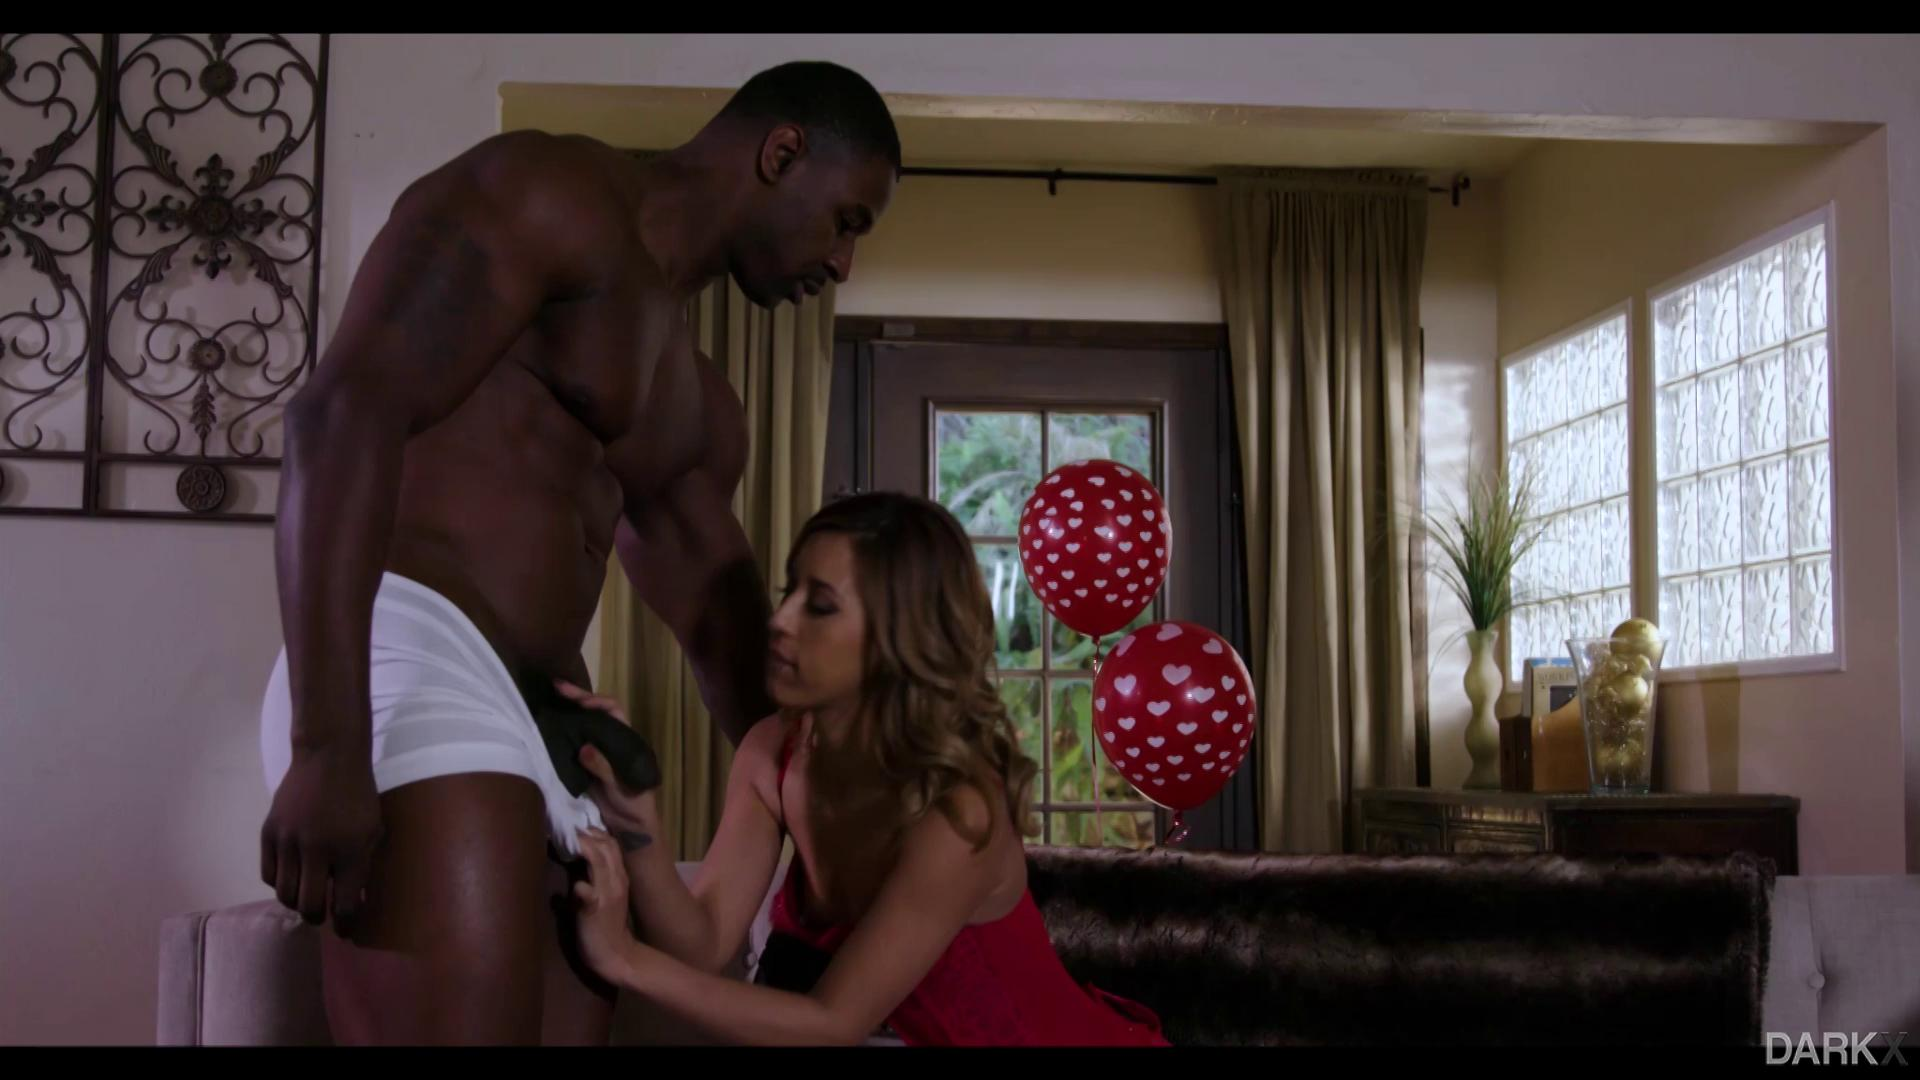 DarkX – Demi Lopez I Had Chocolate For Valentine